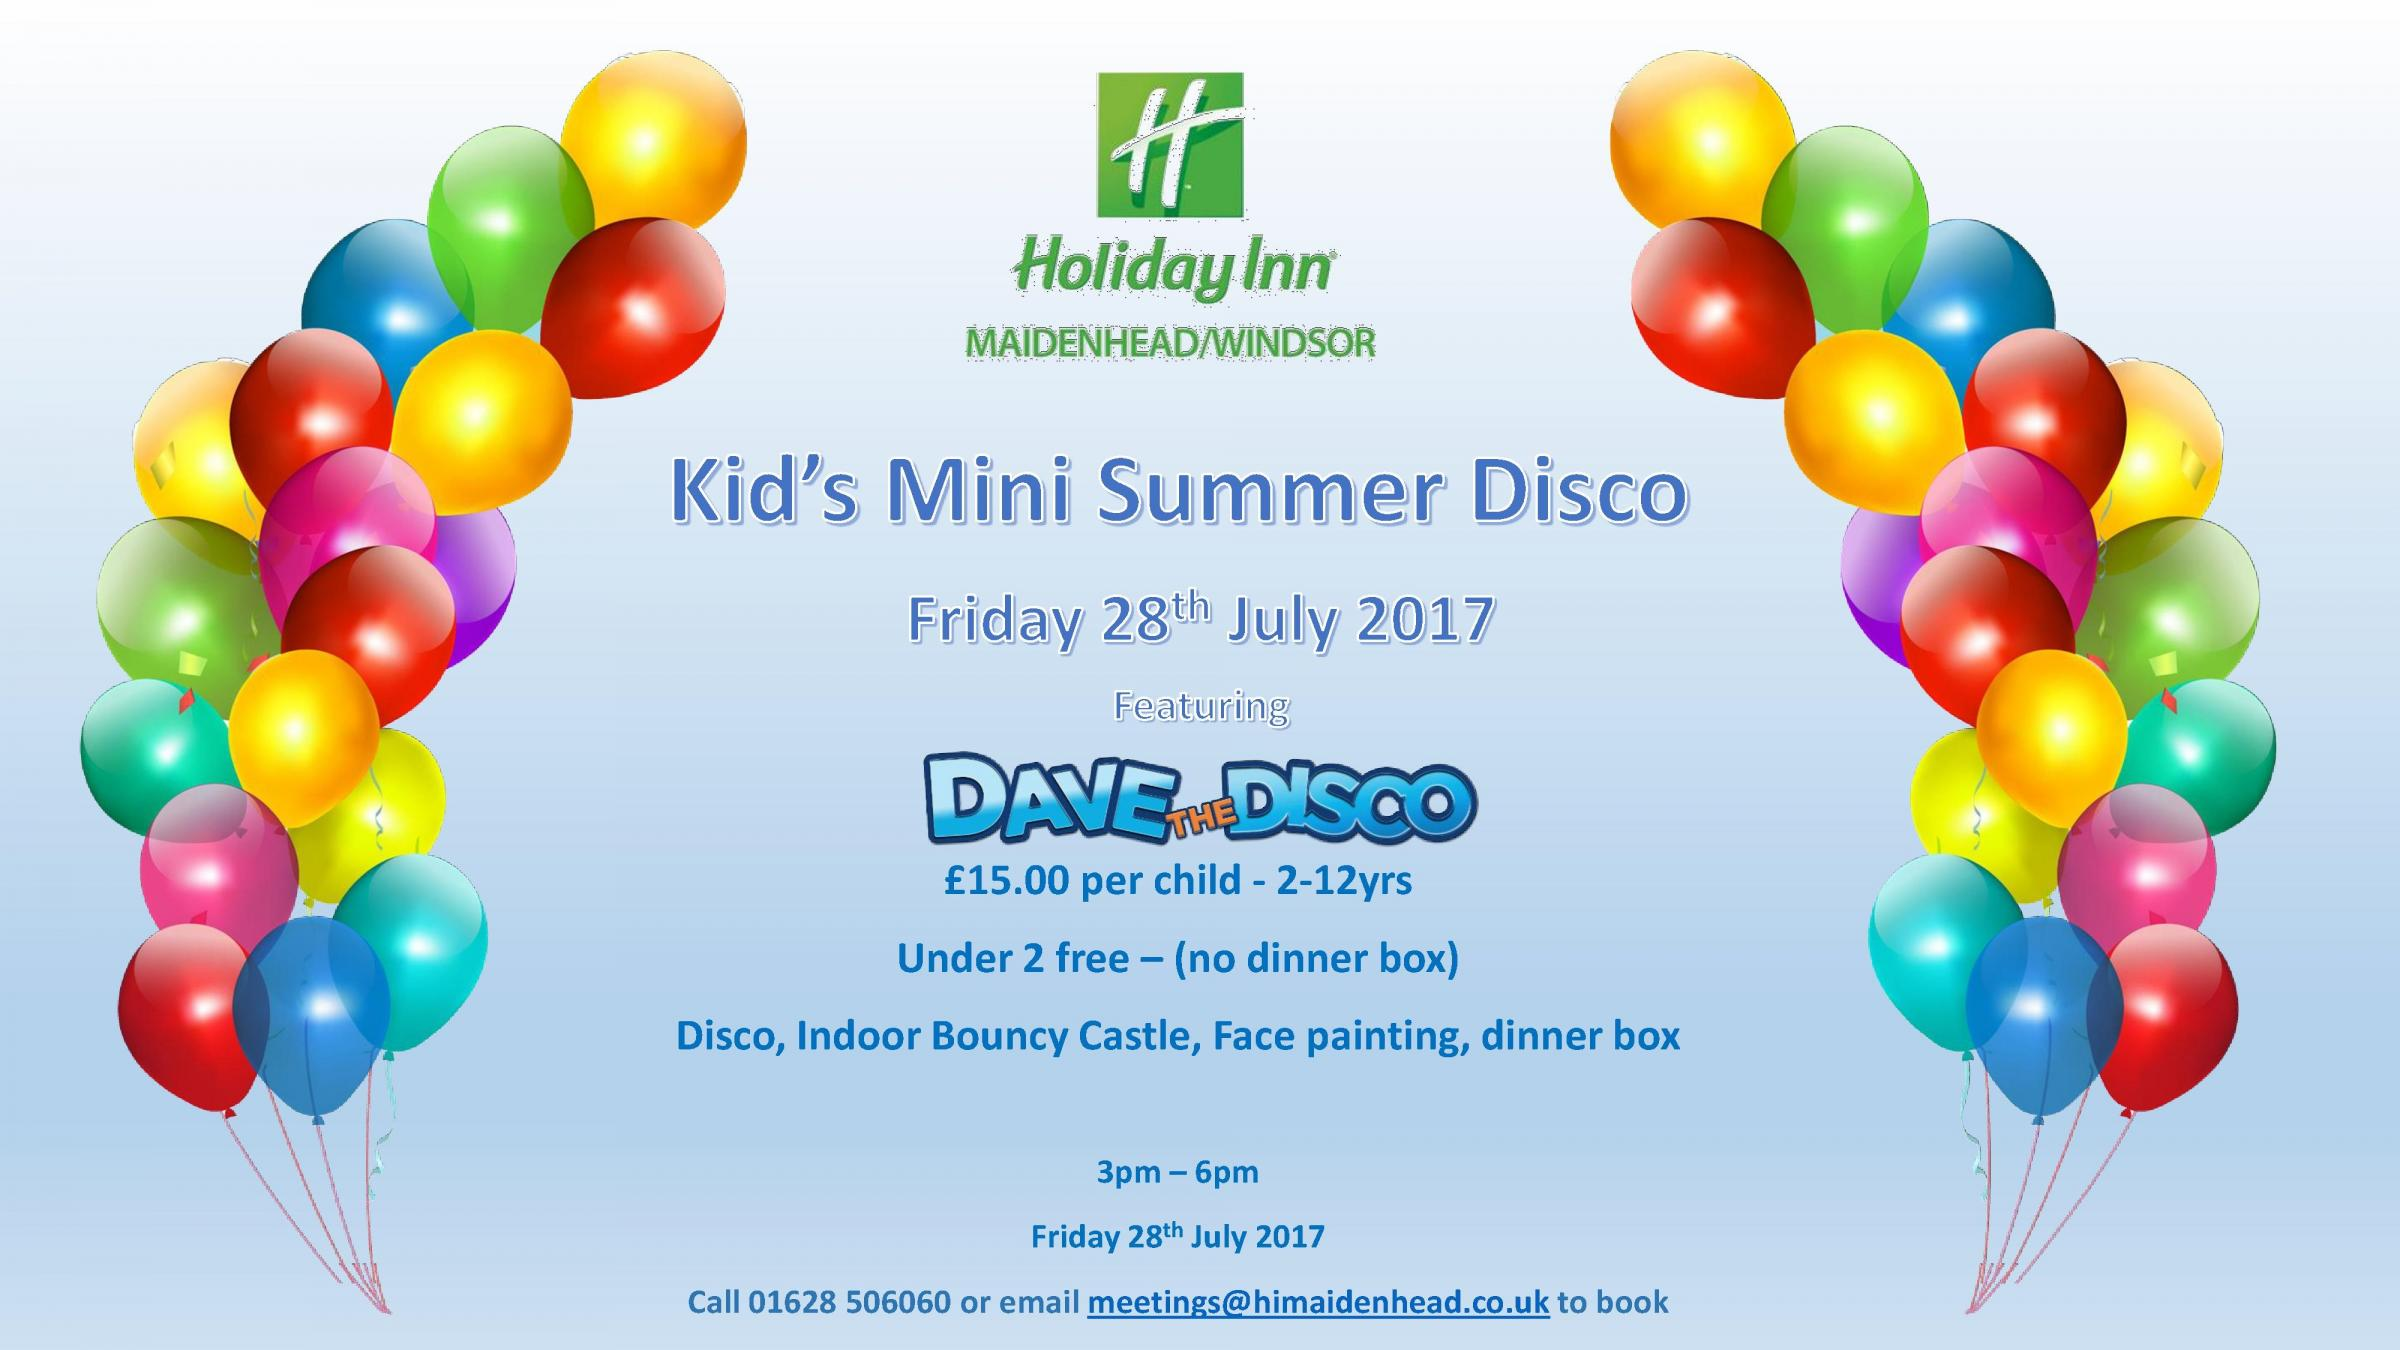 Kids Mini Summer Disco